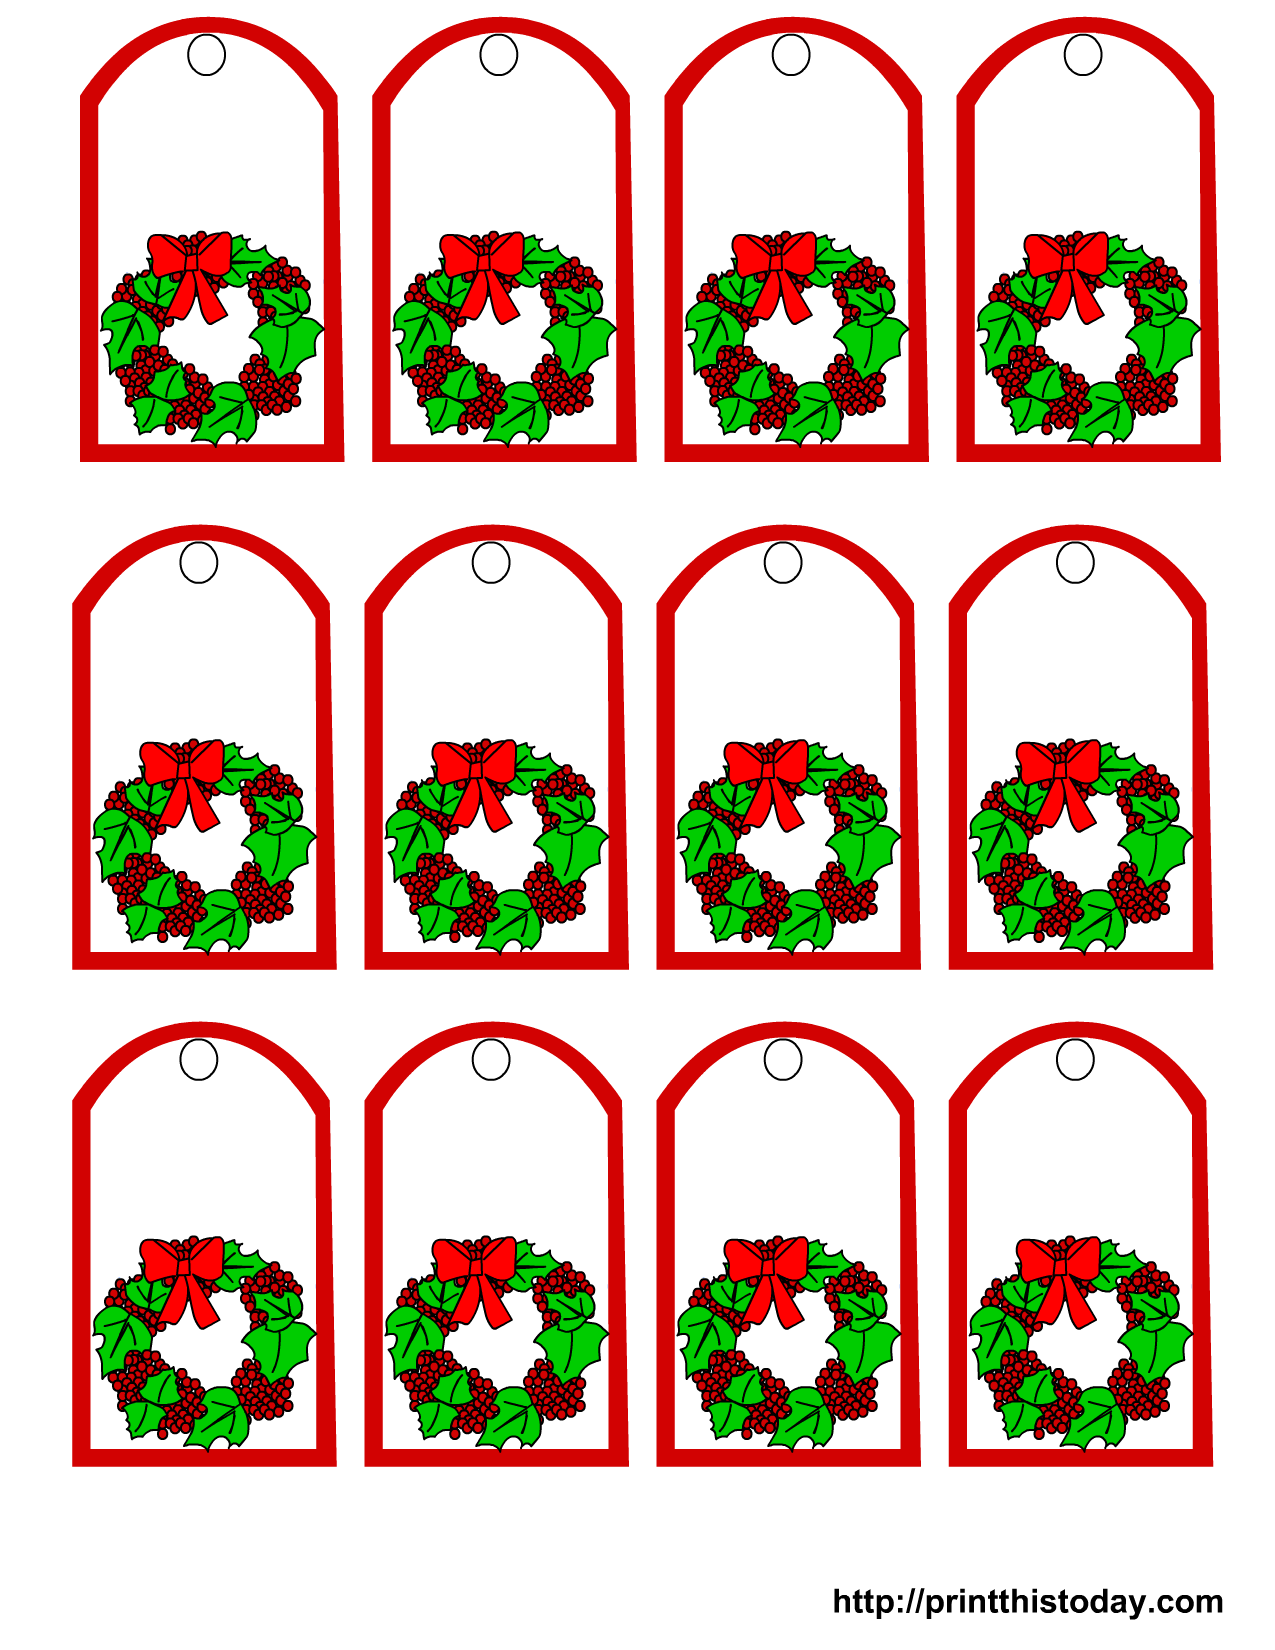 ... png 260kB, This set of Christmas labels shows a mistletoe and a bow